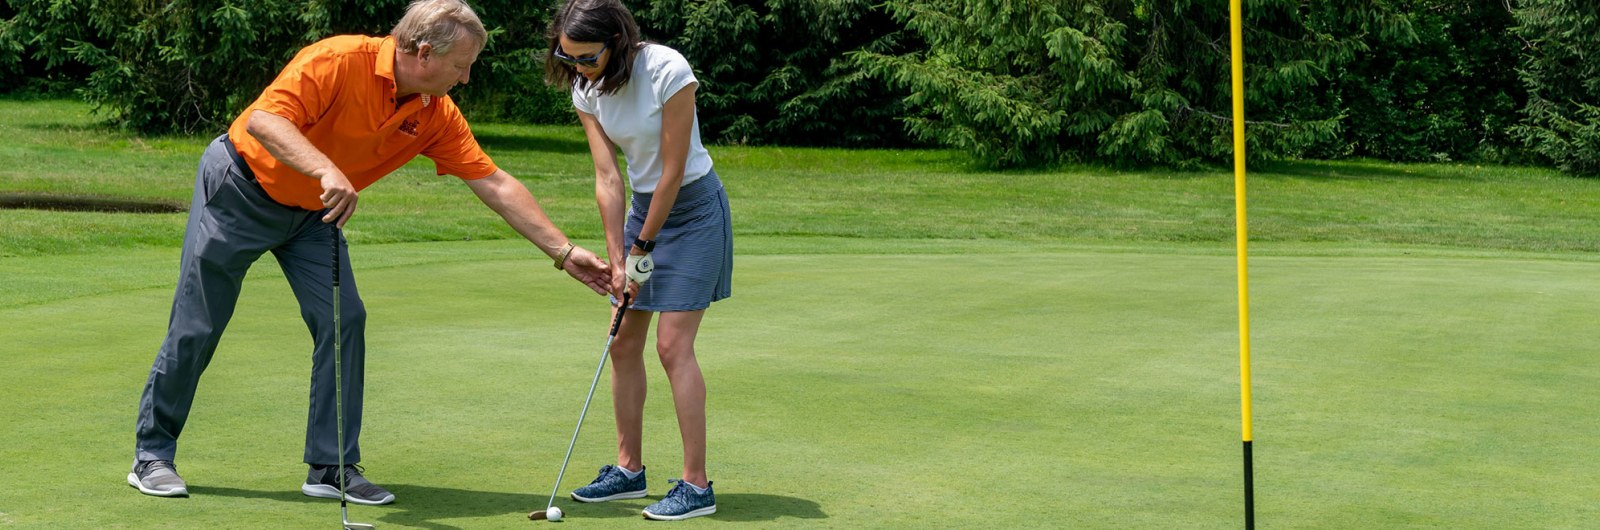 Golf instructor helping woman putt during golf lesson